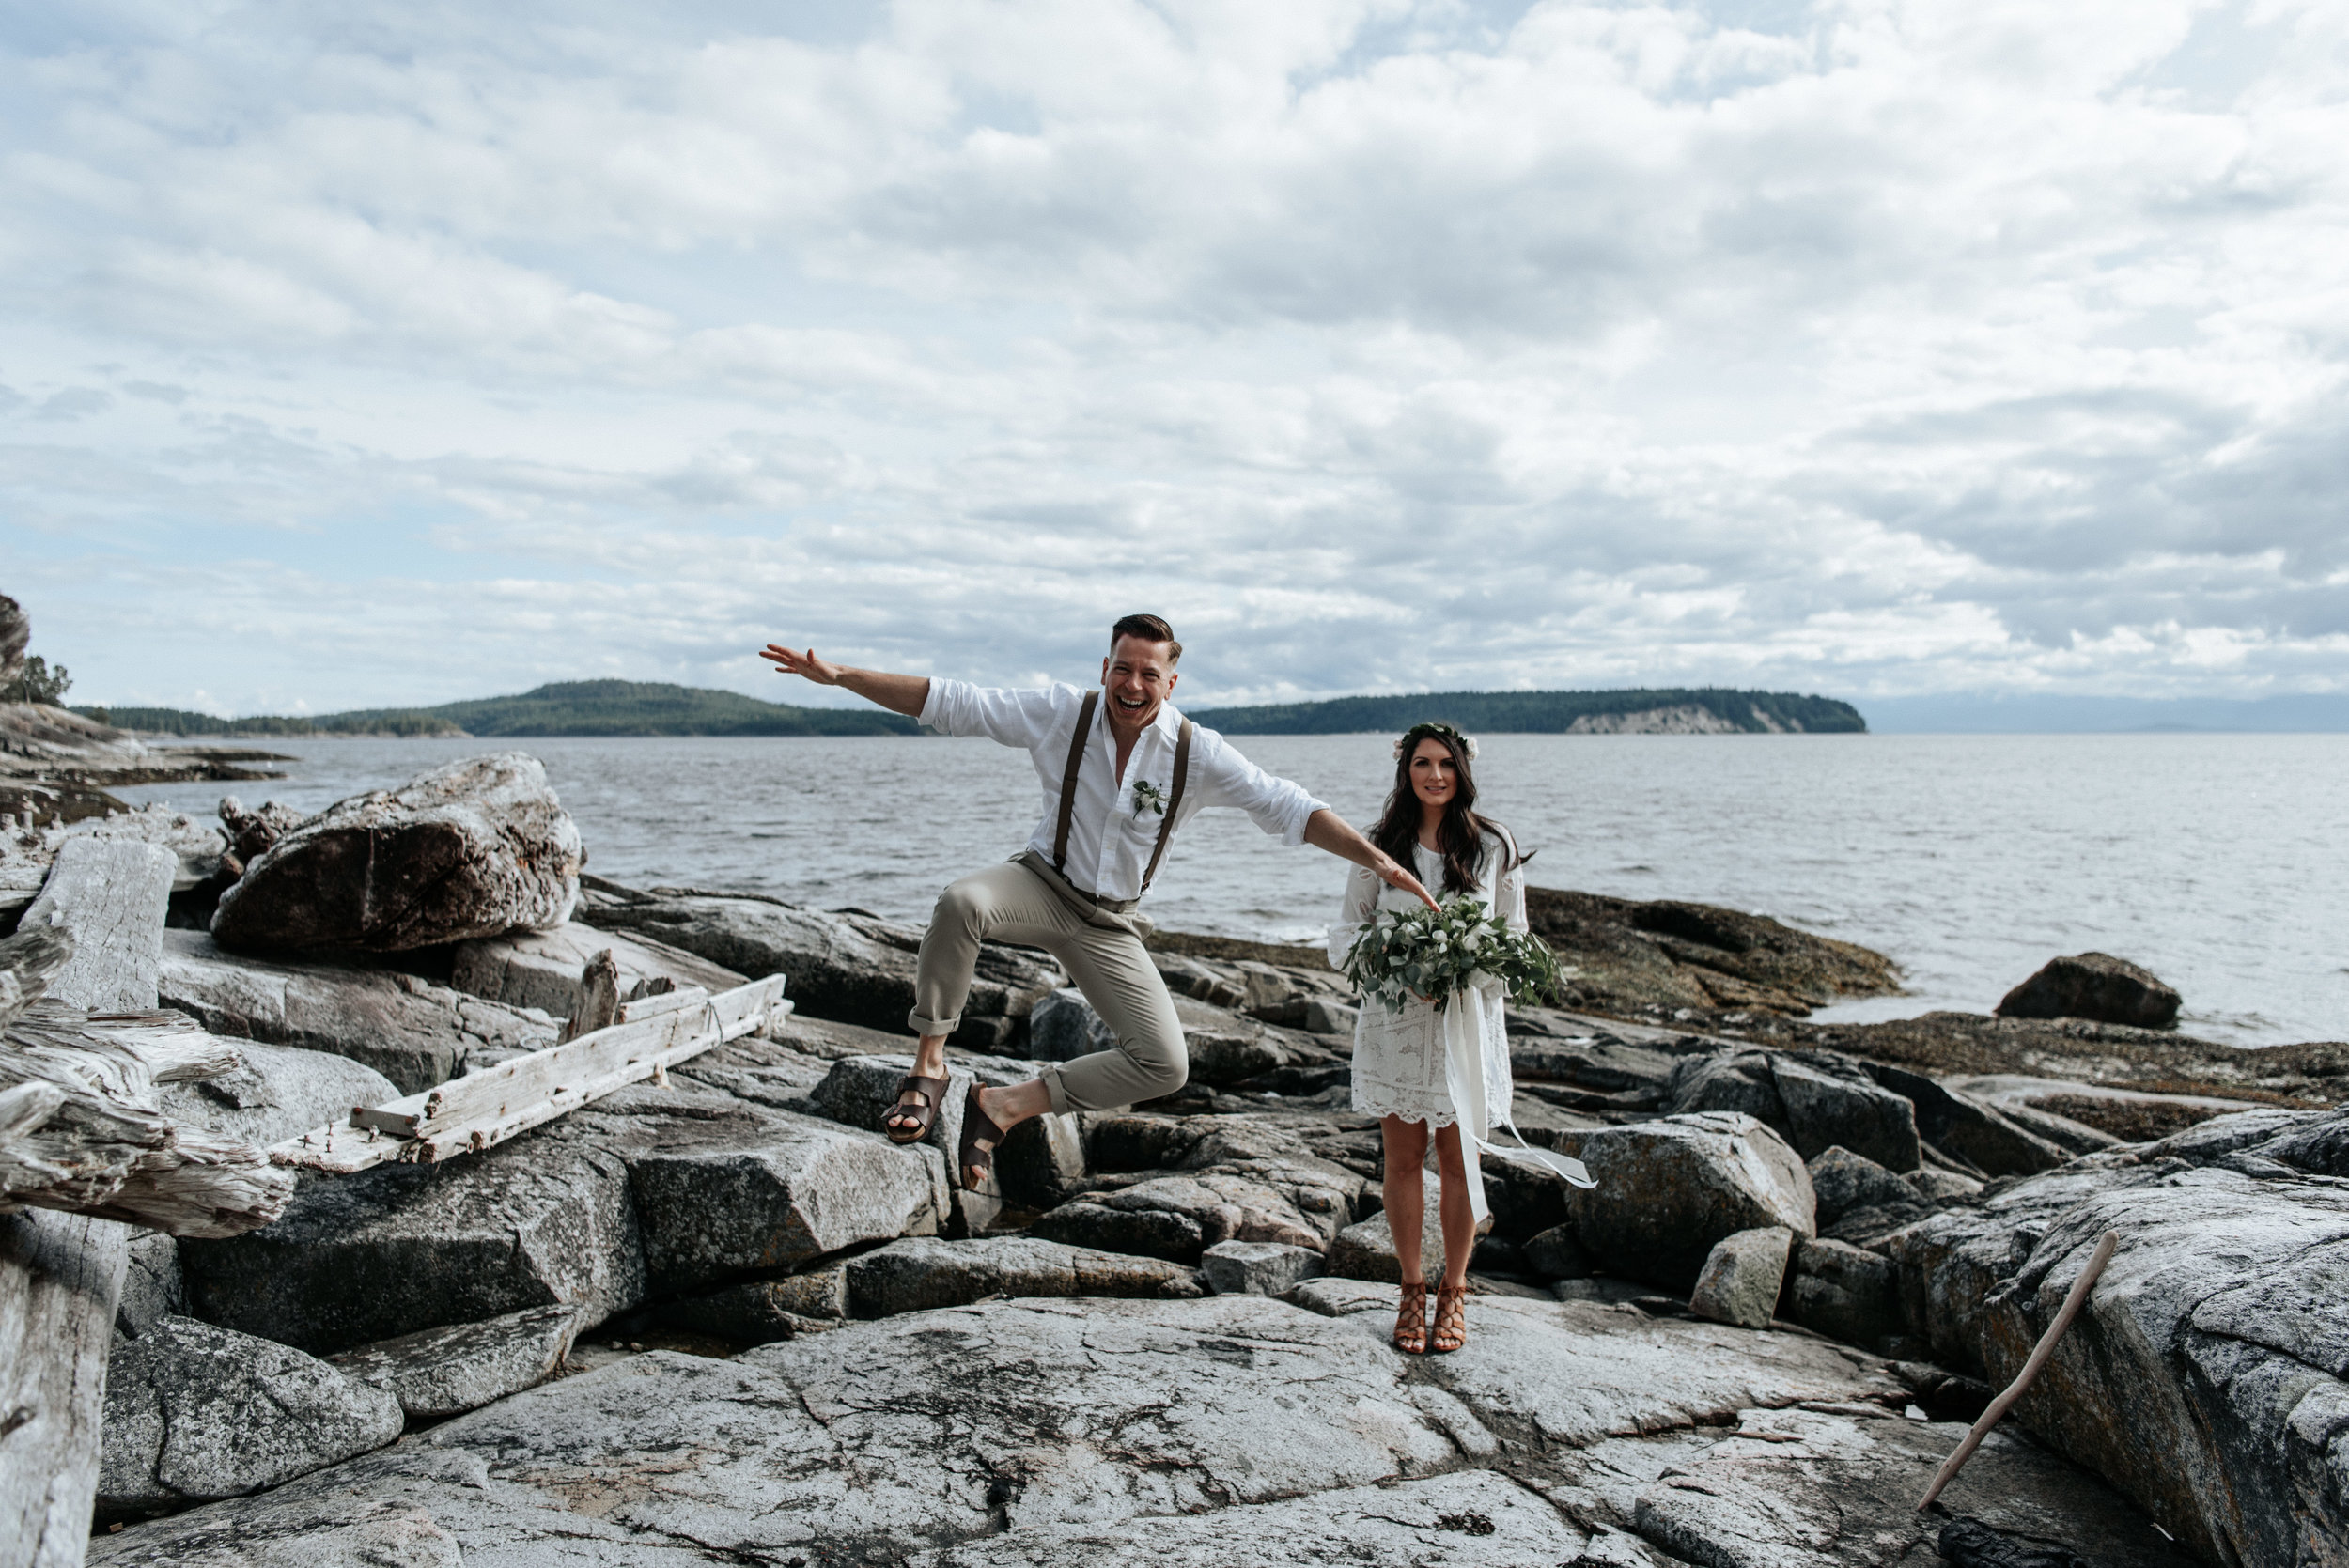 Ashley + Jeff - Rockwater Resort Elopement - Sunshine Coast BC Photographer - Laura Olson Photography-4401.jpg